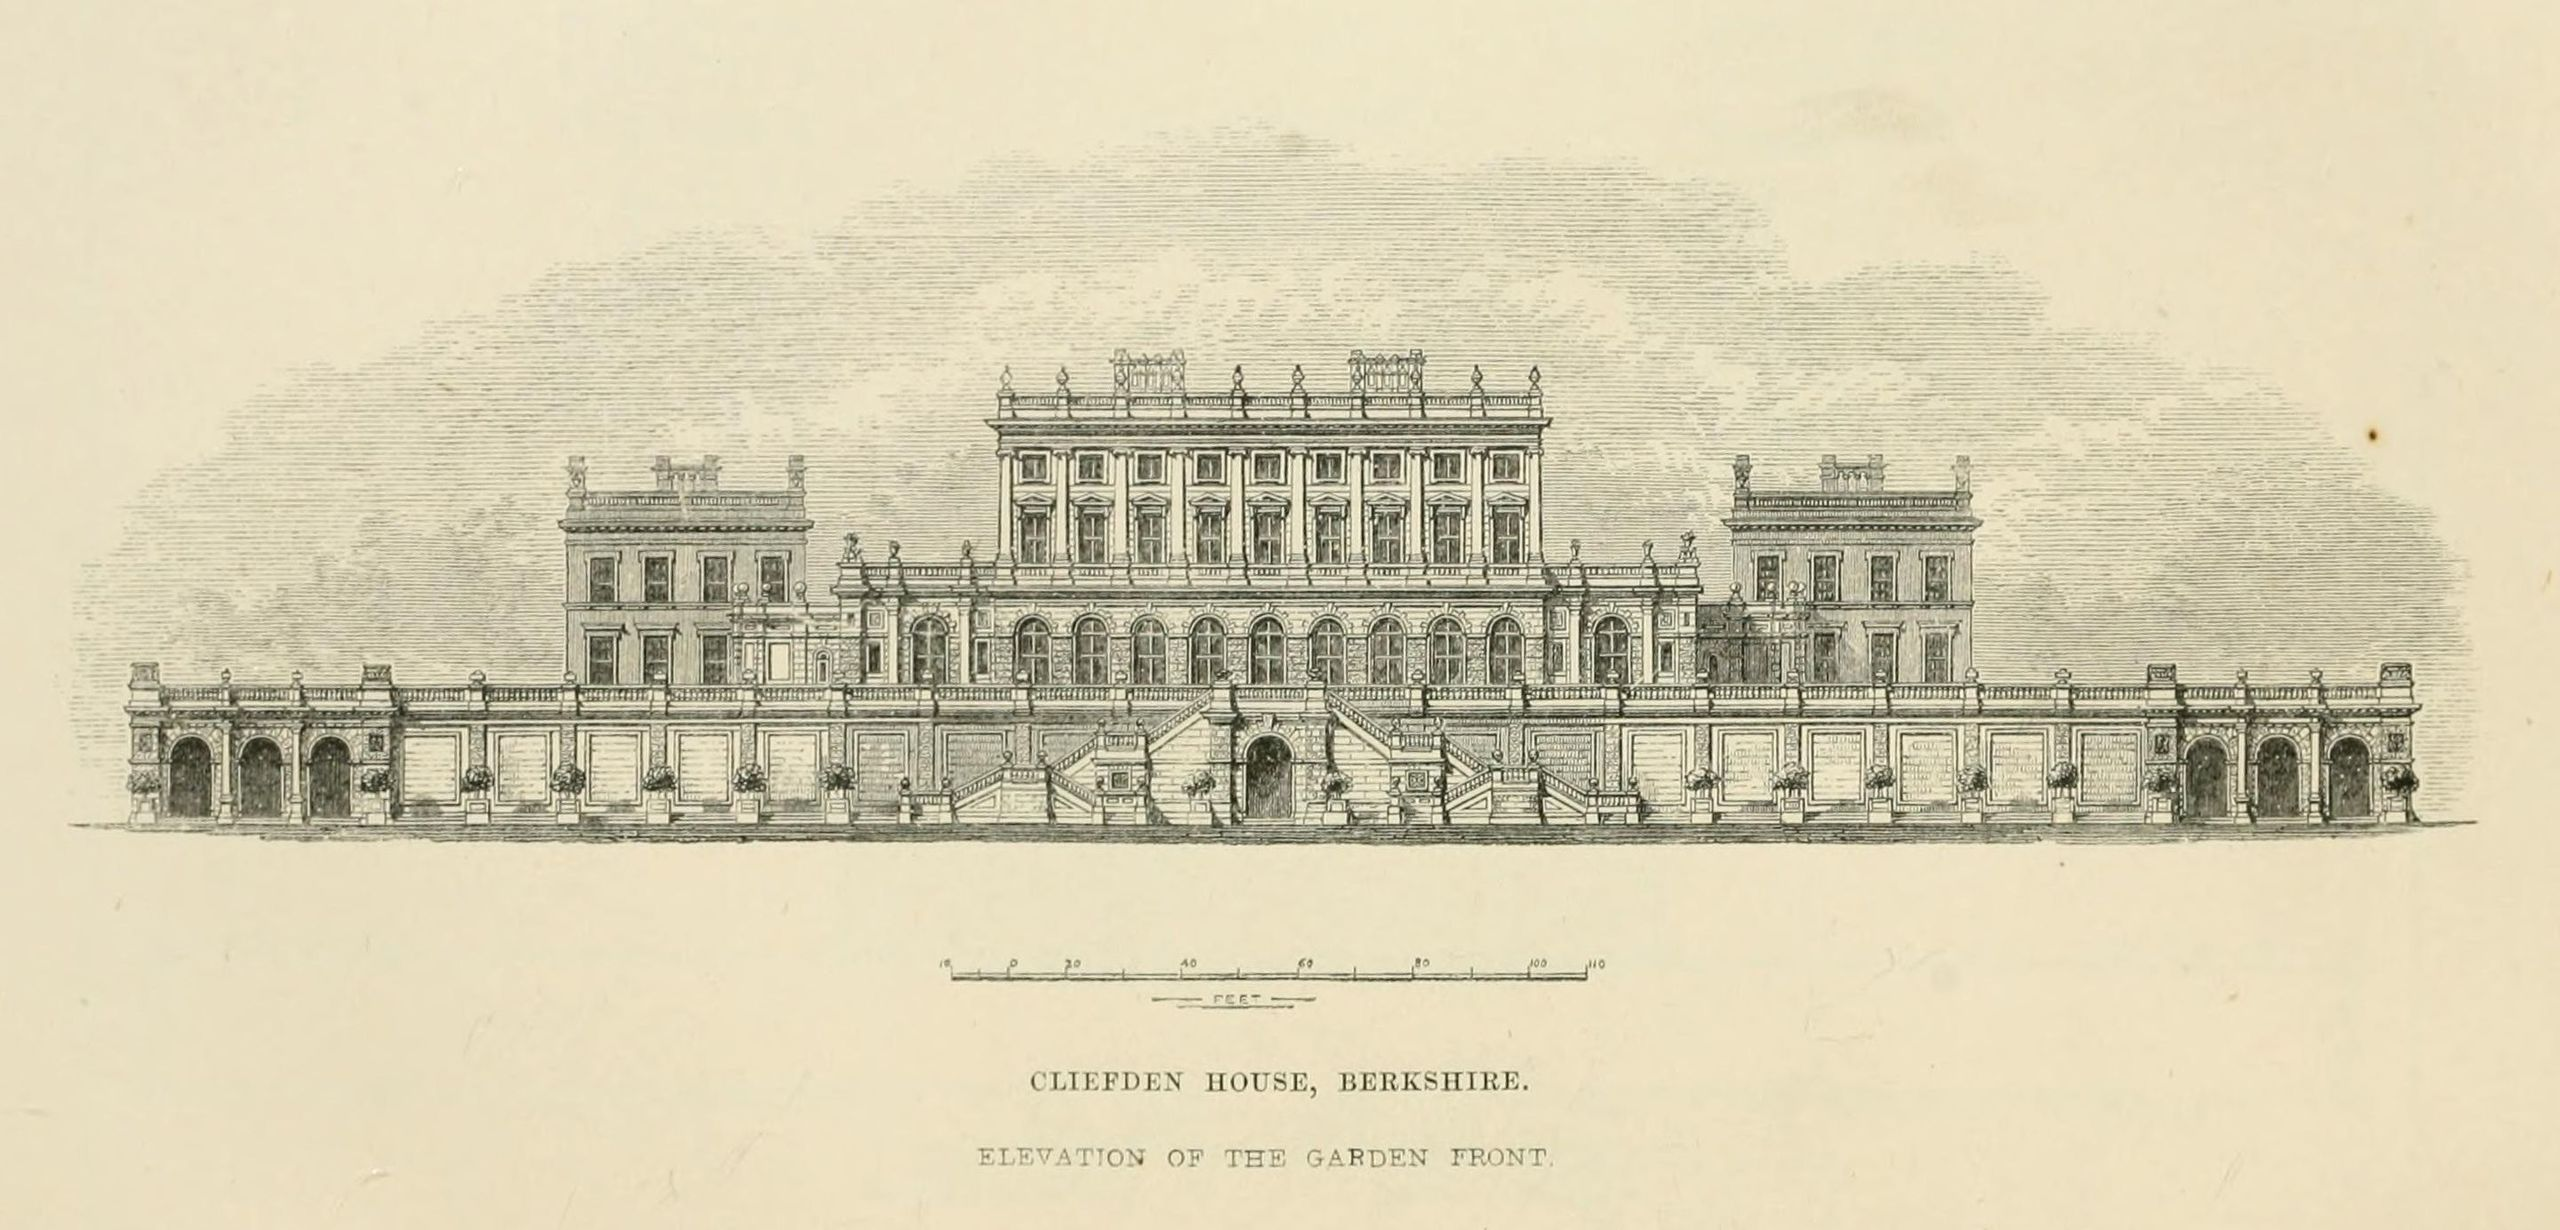 Cliveden drawing